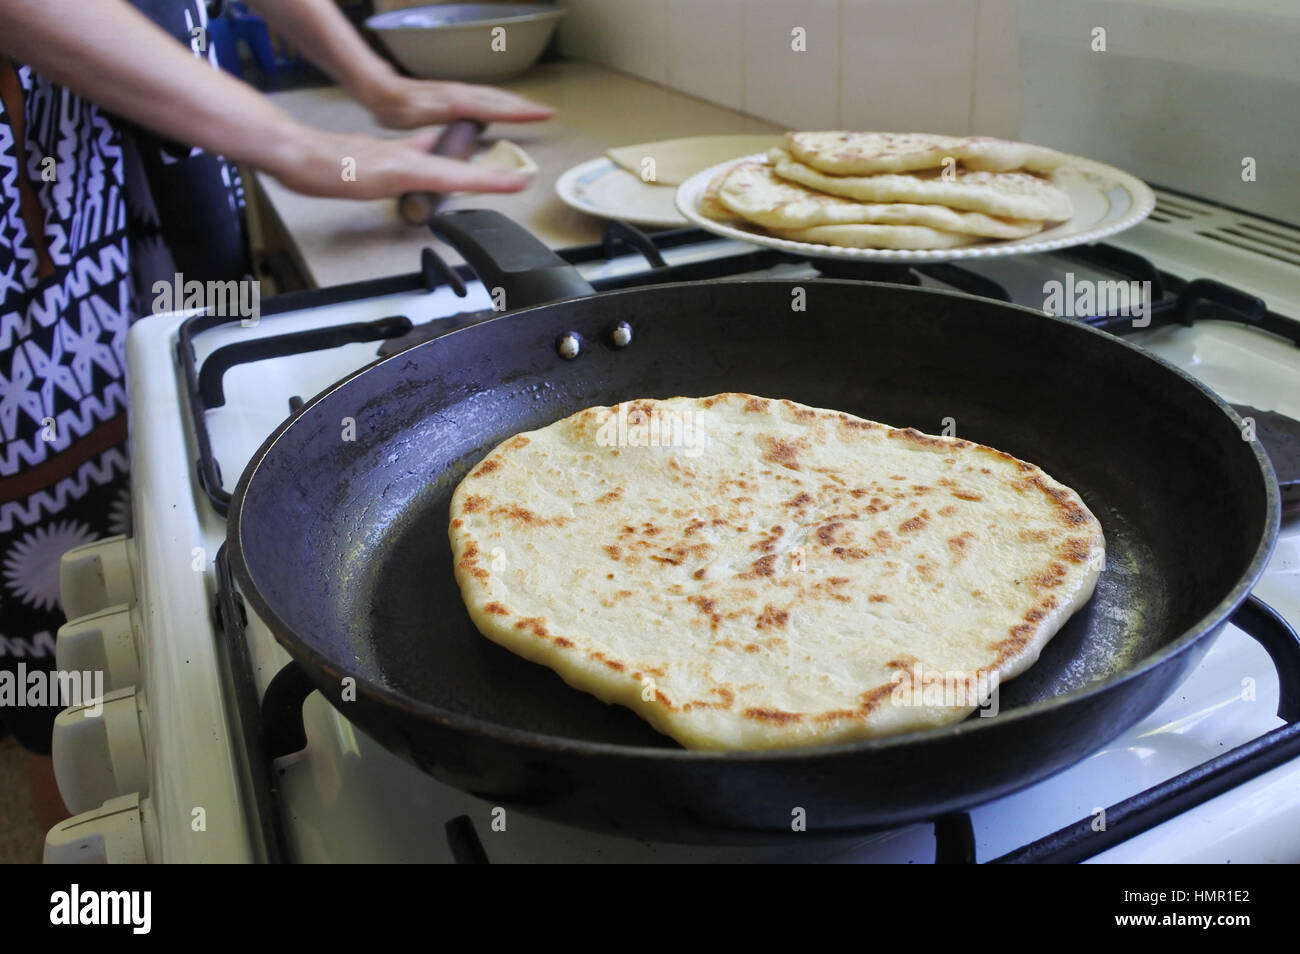 Indo fijian woman cooking homemade naan bread in the kitchen indian indo fijian woman cooking homemade naan bread in the kitchen indian food forumfinder Images